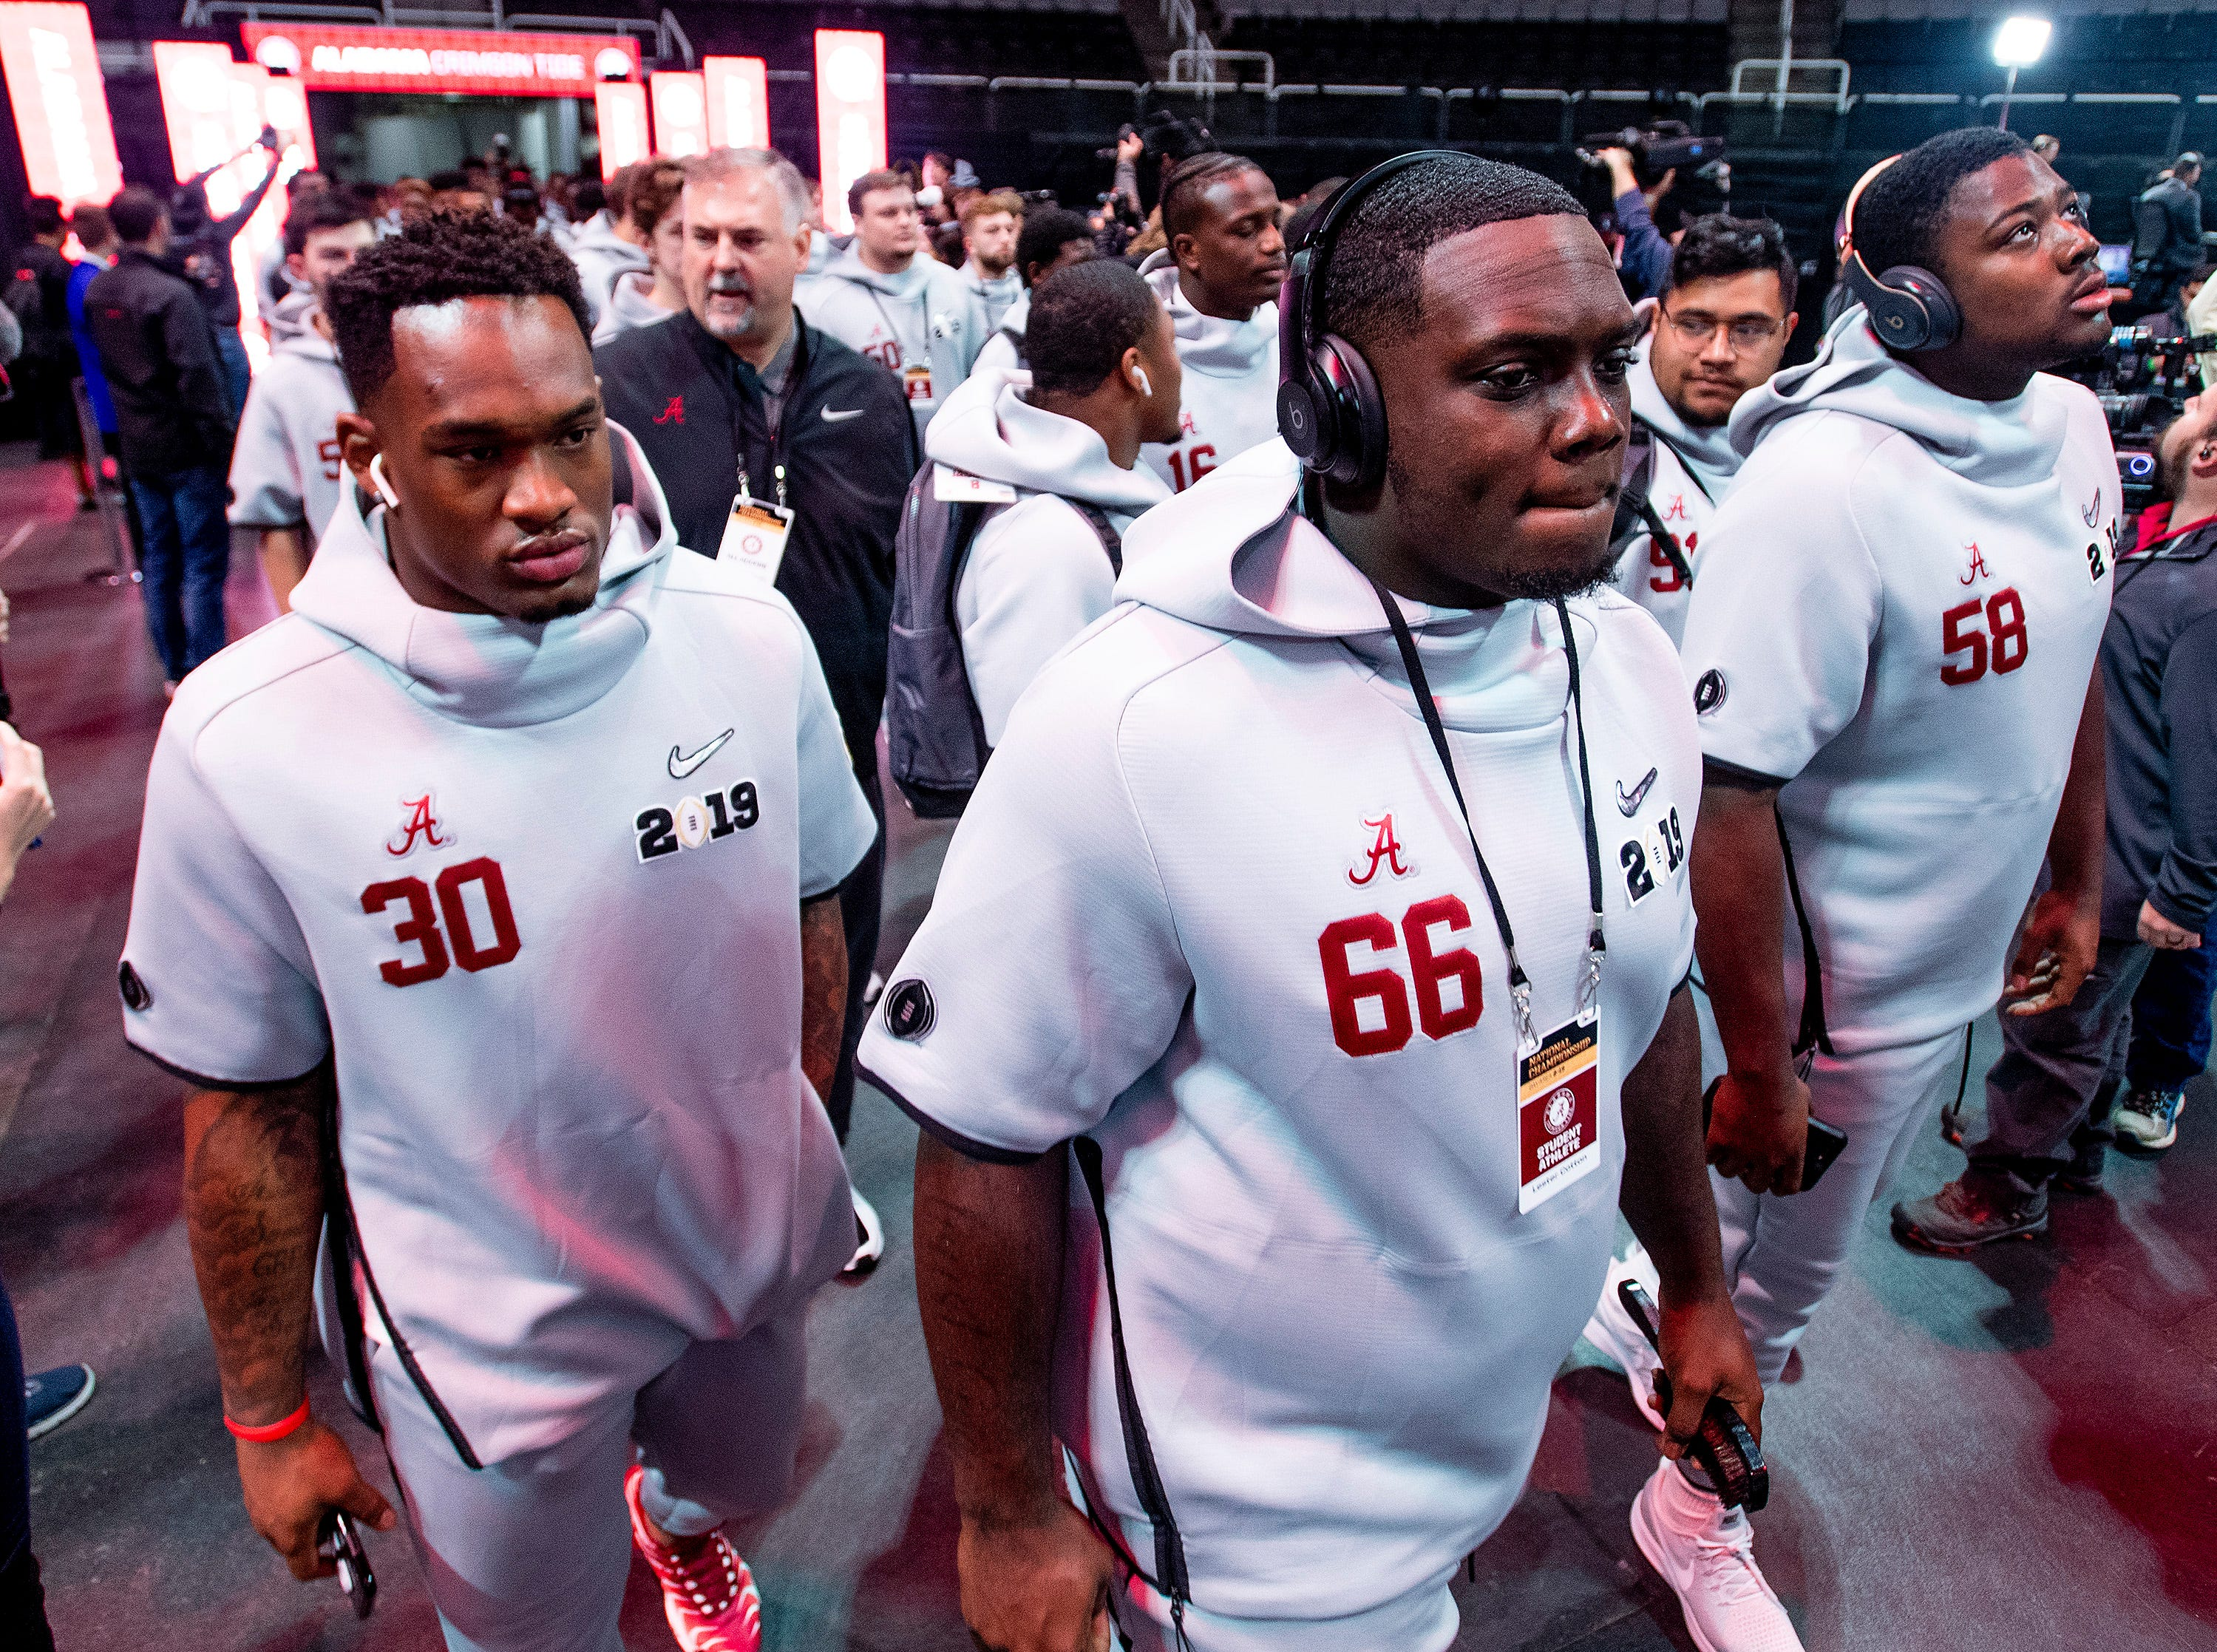 Alabama linebacker Mack Wilson (30) offensive lineman Lester Cotton (66) and defensive lineman Christian Barmore (58) arrive with the team for the Alabama Media Day at the SAP Center in San Jose, Ca., on Saturday January 5, 2019.